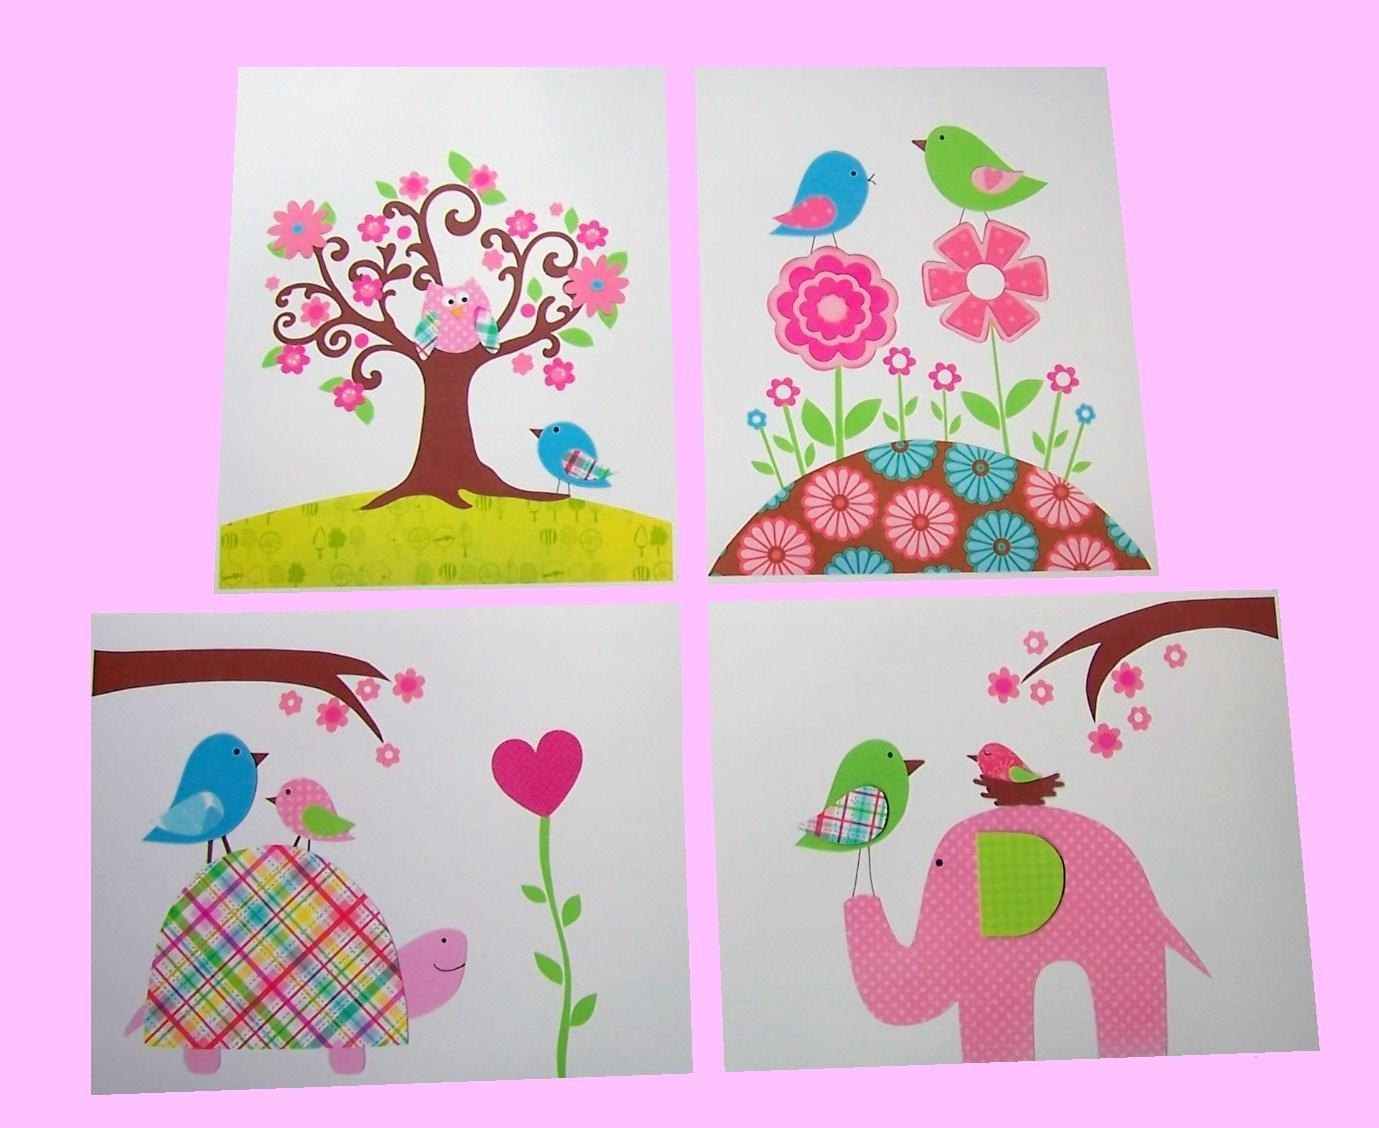 Wall Art Design Ideas: Paper Cuts Handmade Kid Wall Art Fabric For Recent Childrens Fabric Wall Art (View 13 of 15)